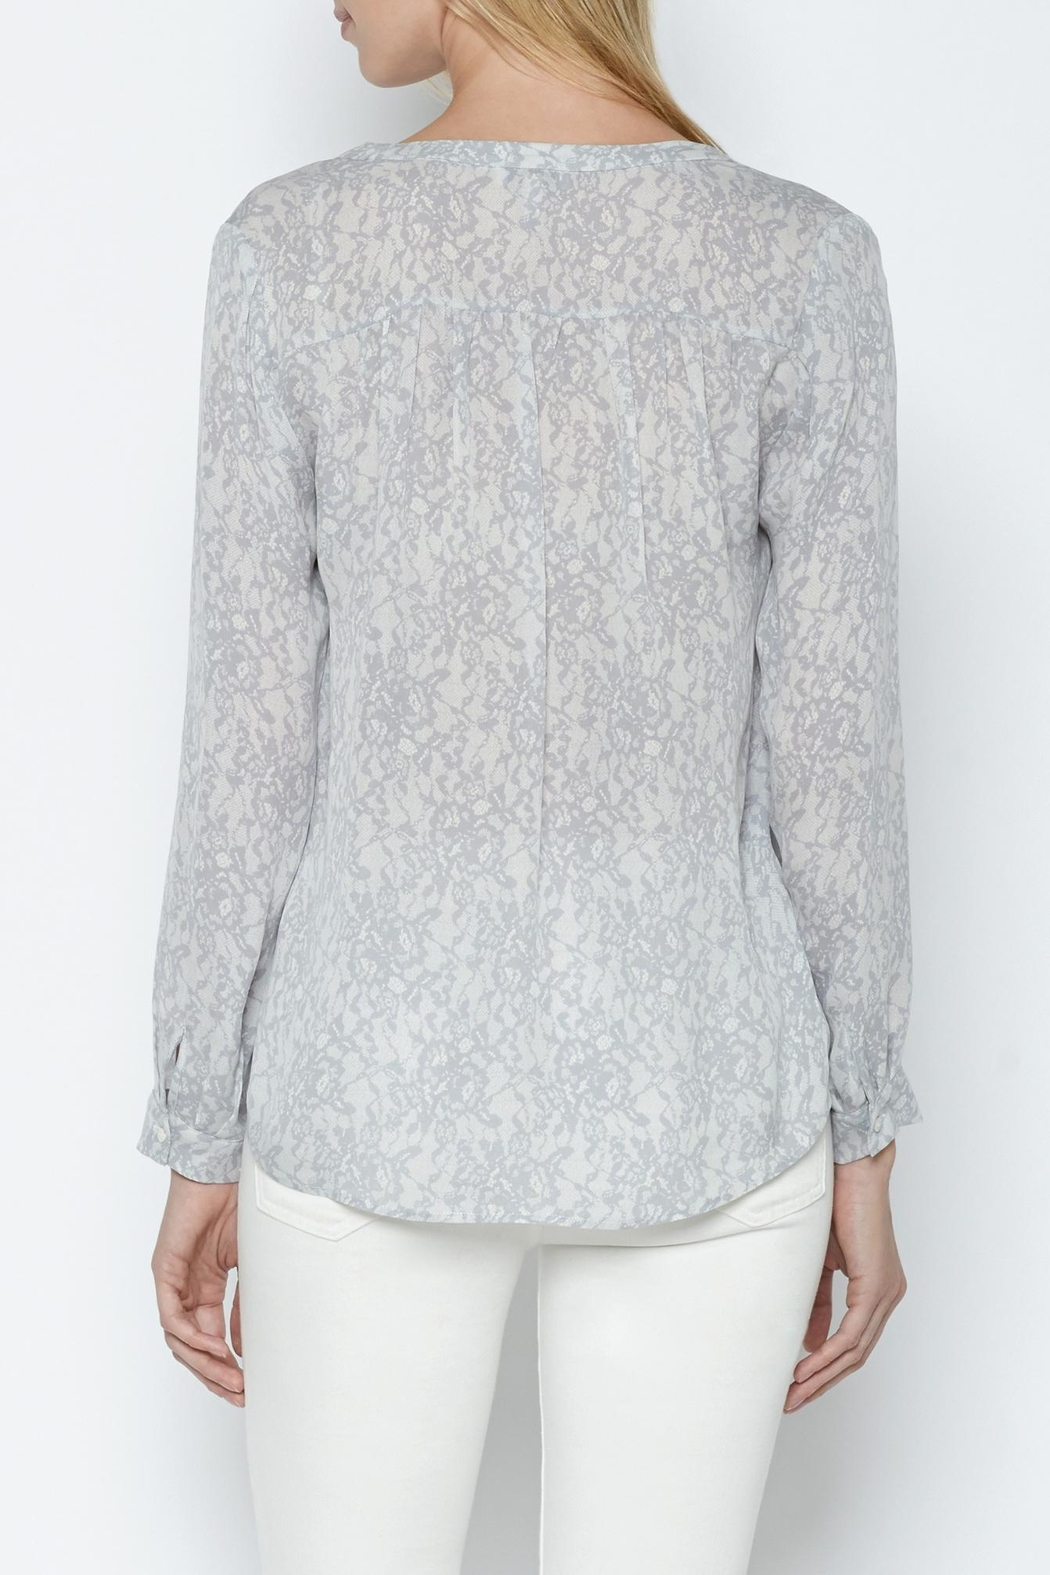 Joie Carita Blouse - Back Cropped Image